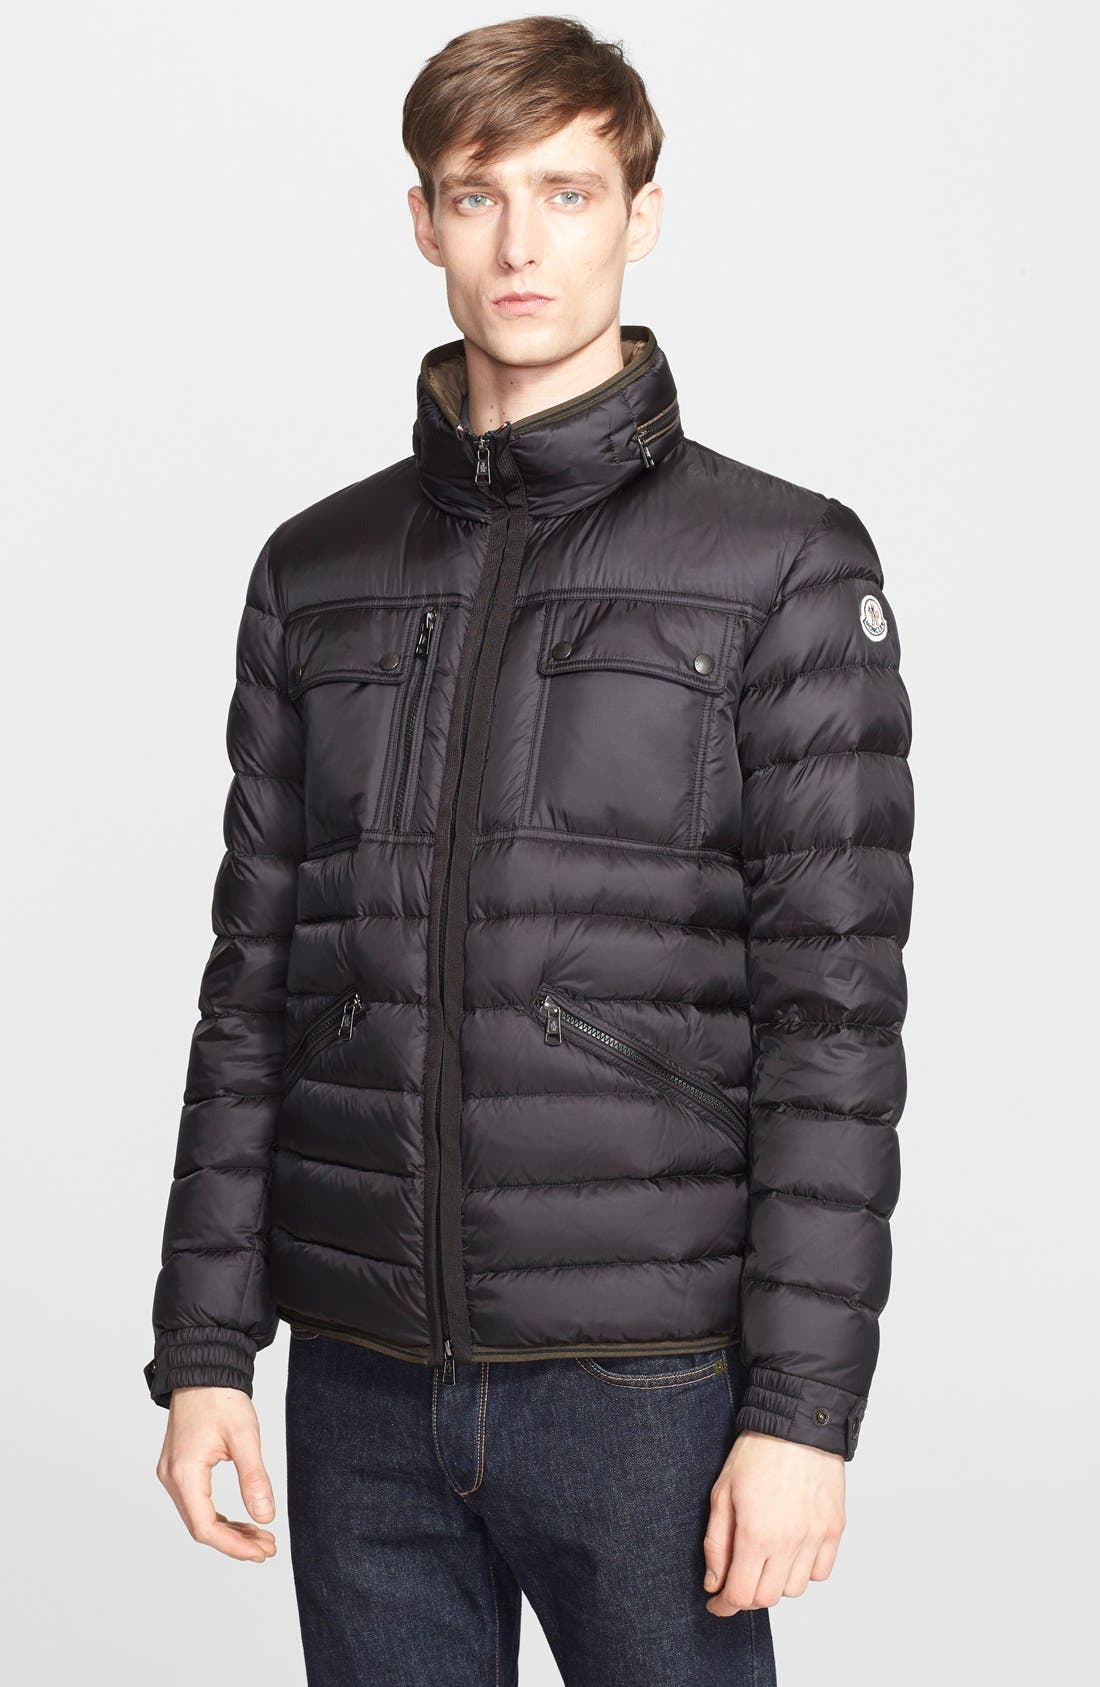 moncler norbert review